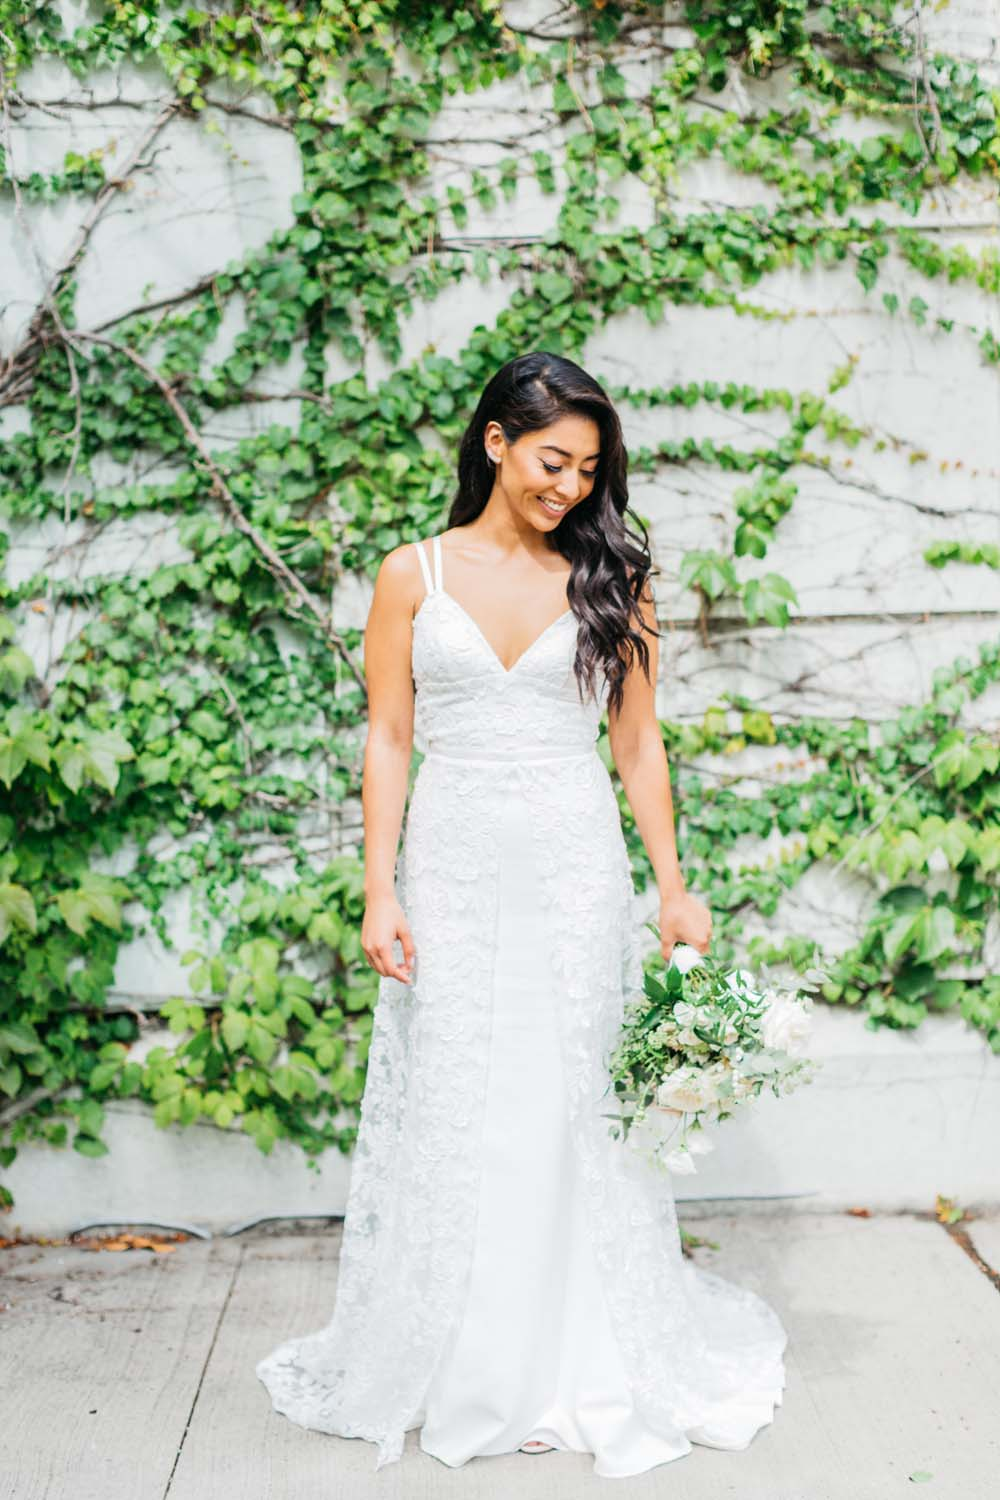 A Bright and Airy September Wedding in Toronto, Ontario - Bride